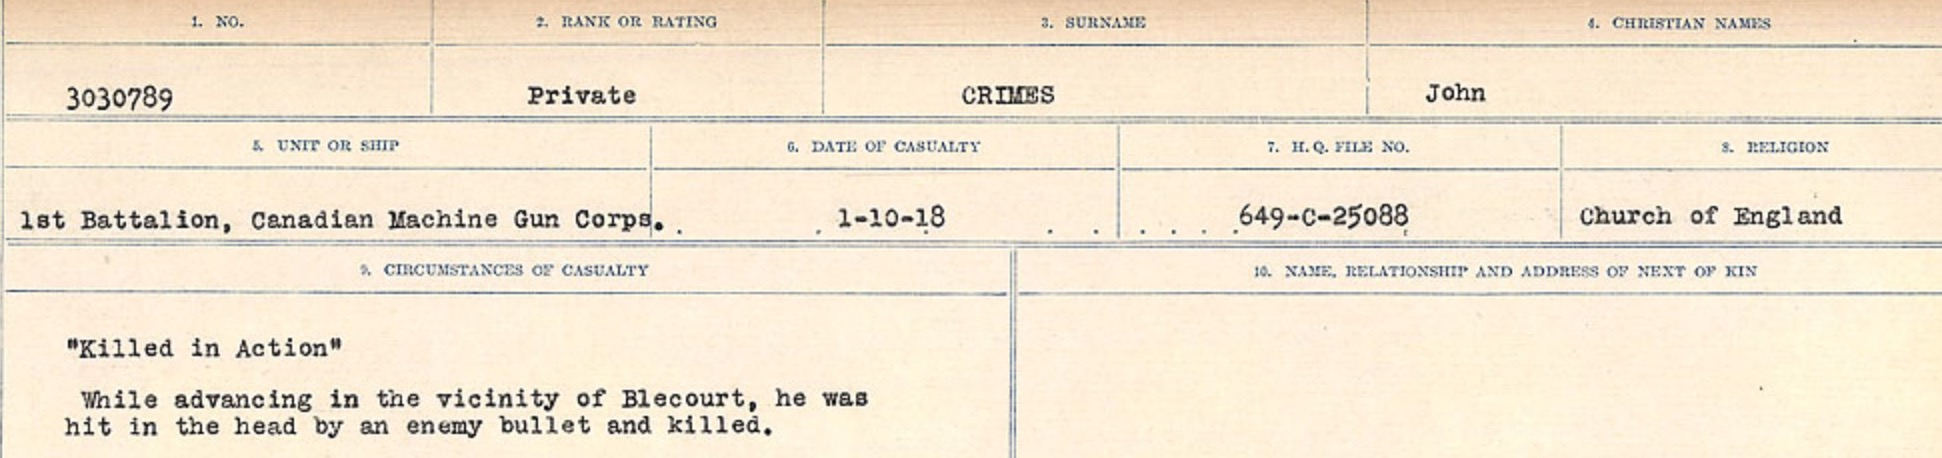 Circumstances of death registers– Source: Library and Archives Canada. CIRCUMSTANCES OF DEATH REGISTERS, FIRST WORLD WAR Surnames: CRABB TO CROSSLAND Microform Sequence 24; Volume Number 31829_B016733. Reference RG150, 1992-93/314, 168. Page 521 of 788.